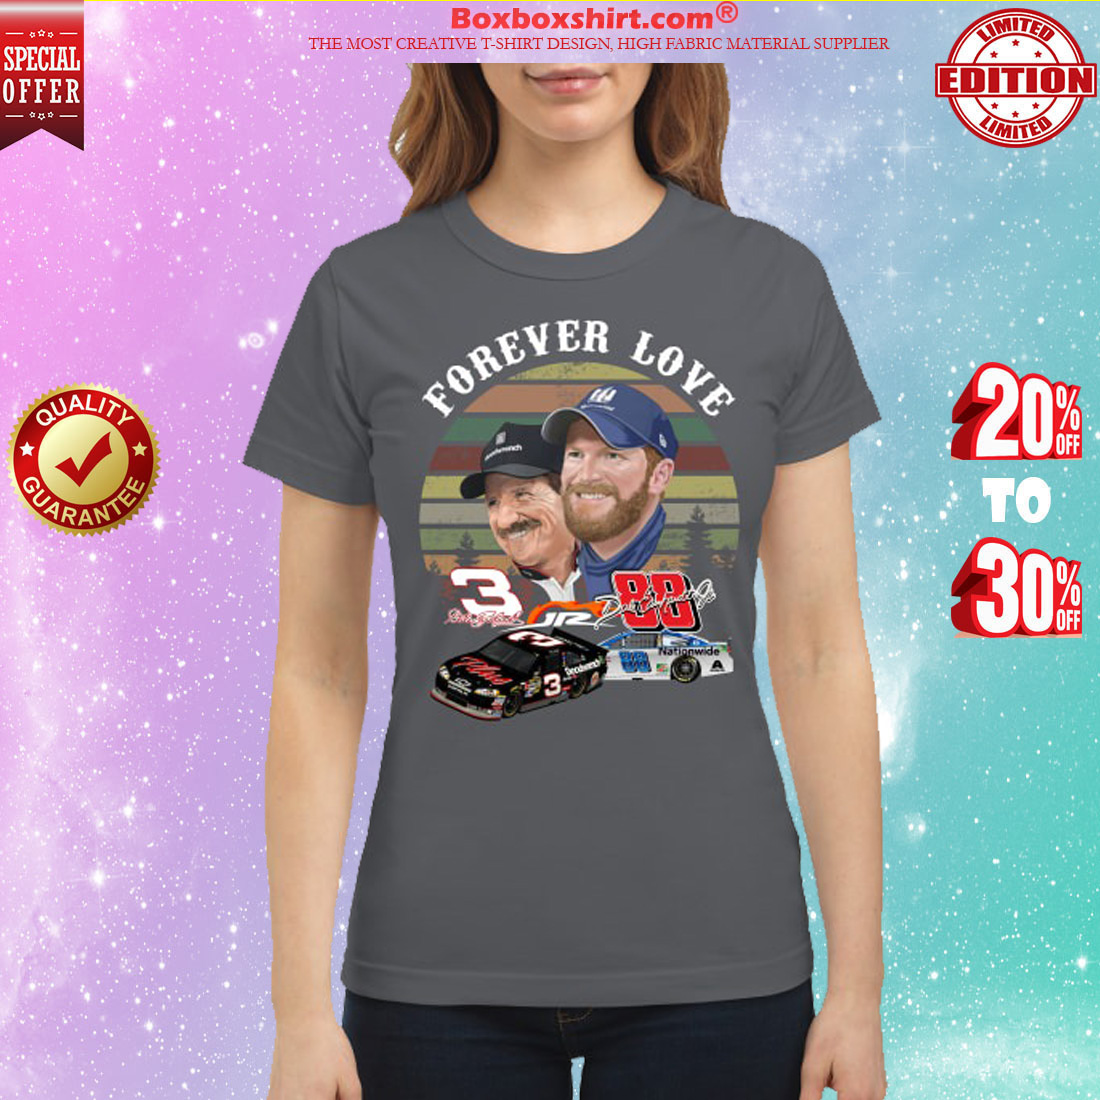 Forever love Dale Earnhardt jr and Dale Earnhardt classic shirt